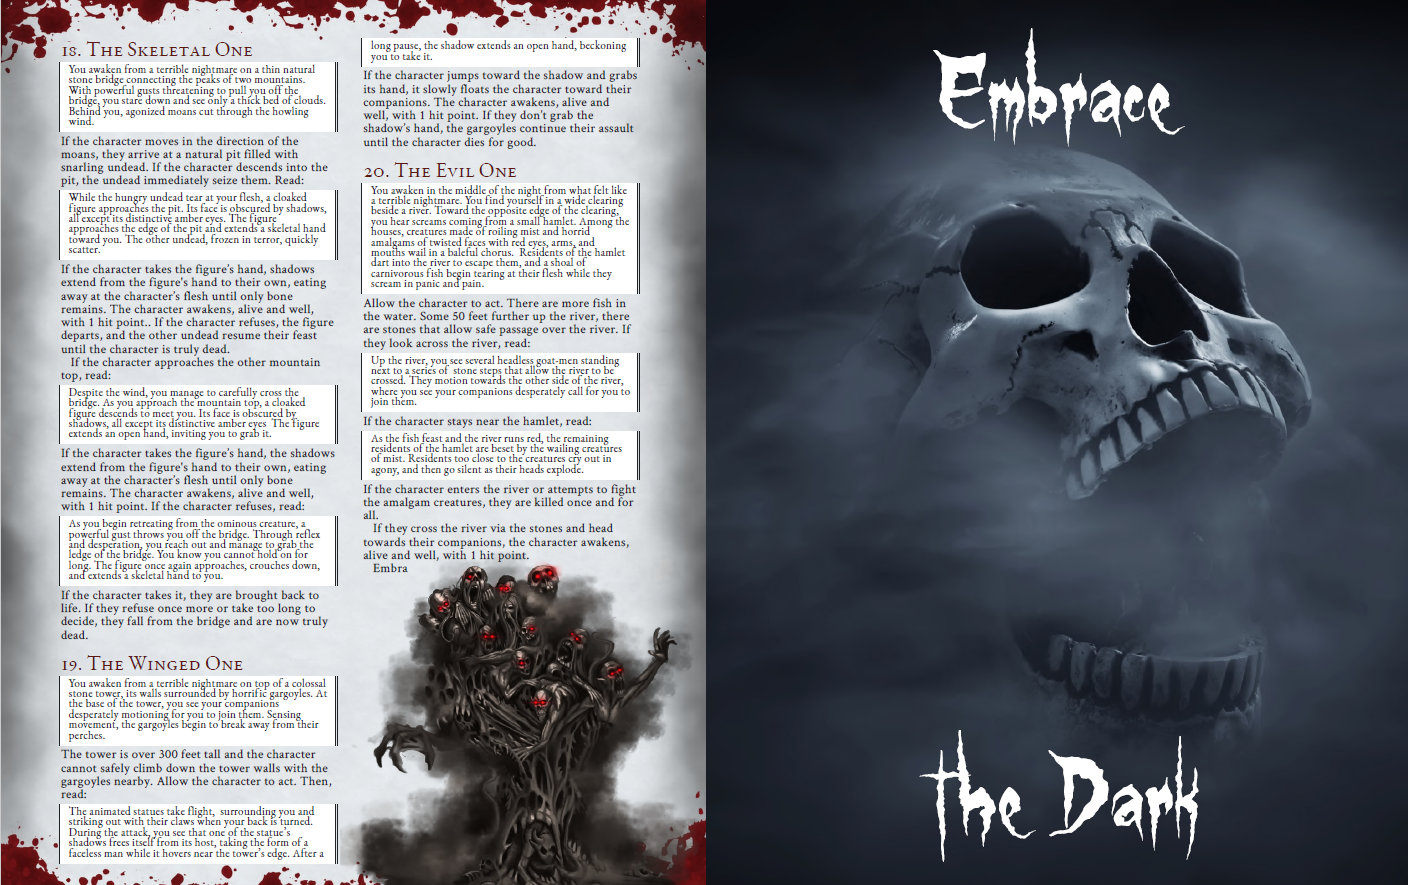 Preview of Encounters #18, #19 and #20, the image of a terrible, multi-headed and armed creature with red yes, and a full art of a skull with a gaping mouth that reads